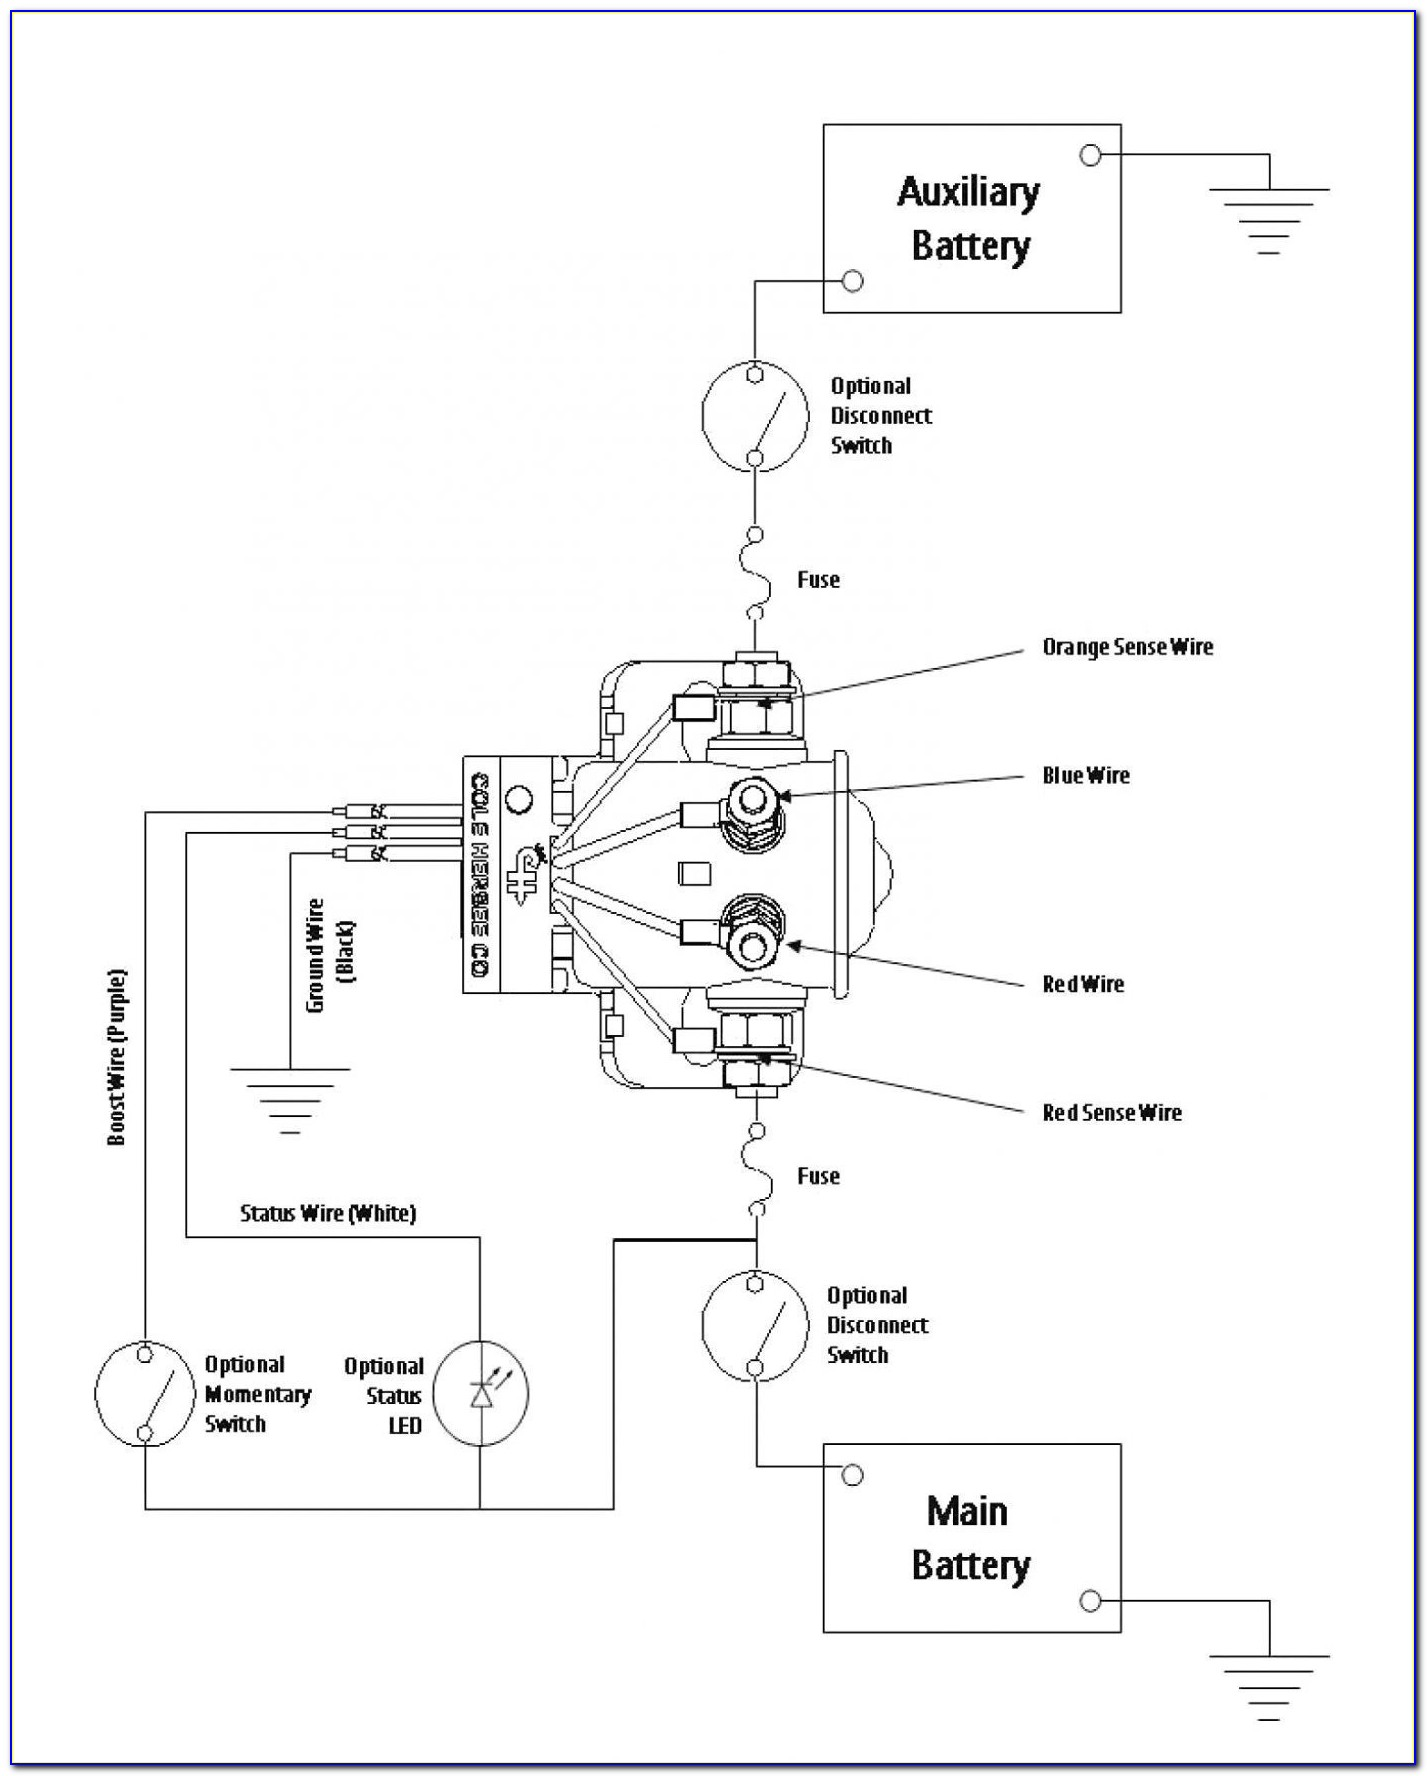 95 7.3 Powerstroke Glow Plug Relay Wiring Diagram